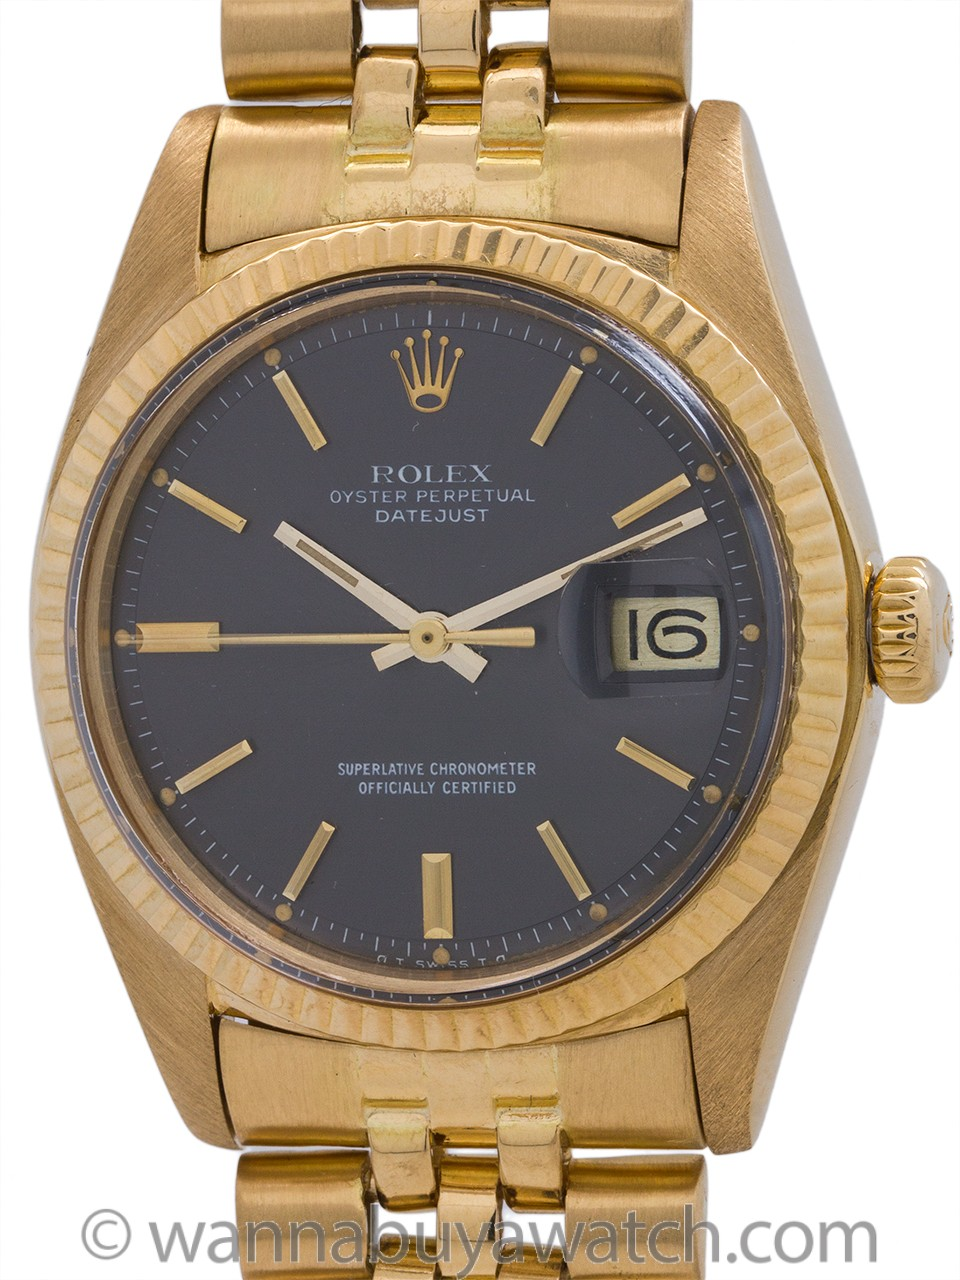 Rolex 18K Gold Datejust ref 1601 Gray Dial circa 1974